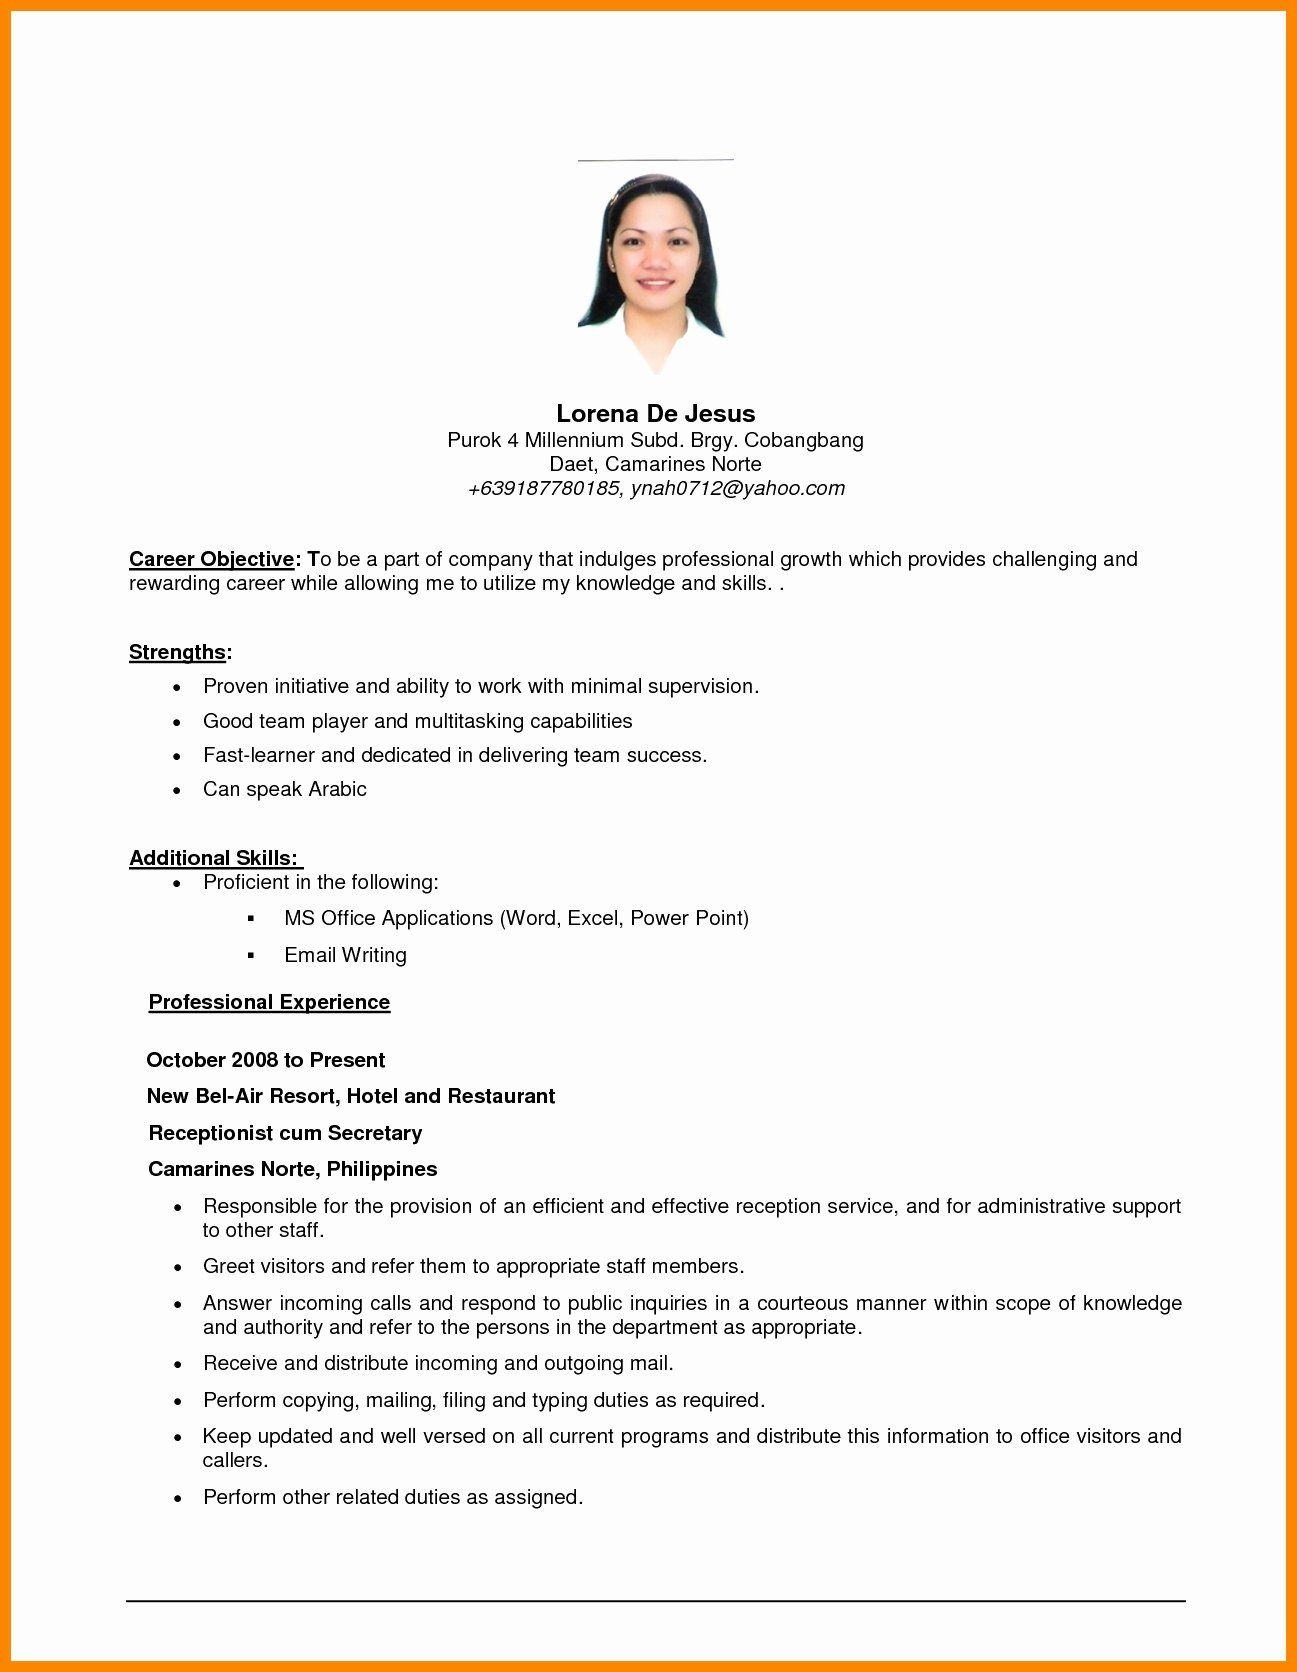 resume professional objective cv examples inspirations for pdf as well resumes career Resume Career Objective For Resume Customer Service